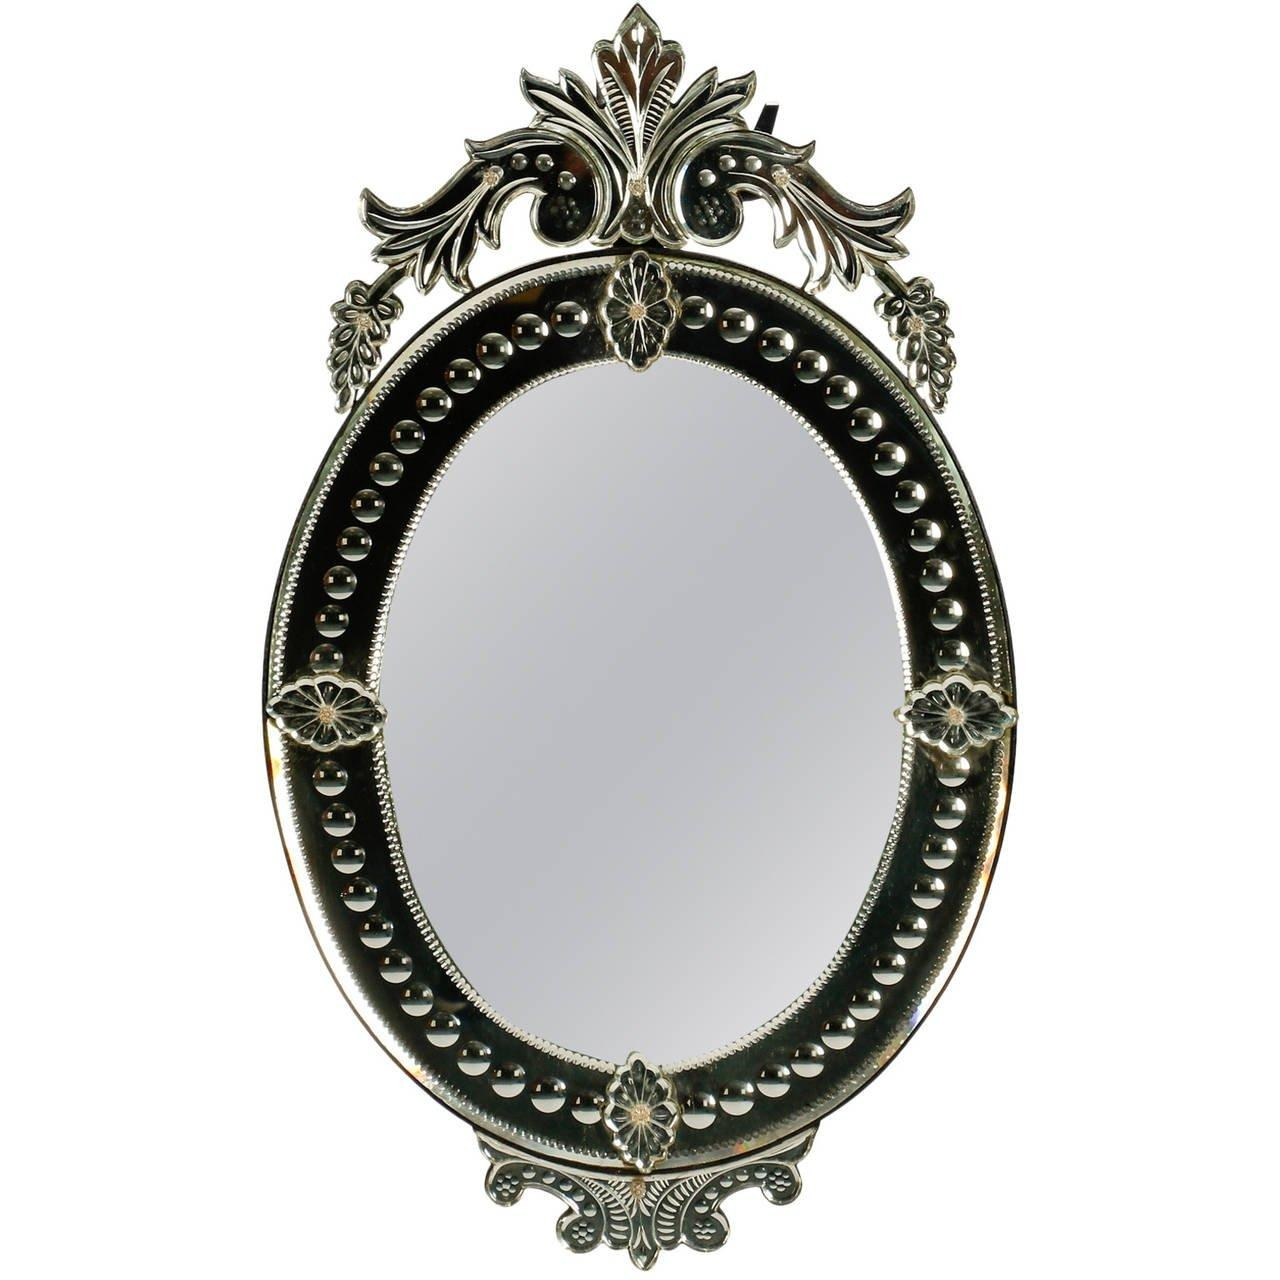 Oval Venetian Mirror With Crown At 1Stdibs With Venetian Oval Mirror (Image 14 of 20)